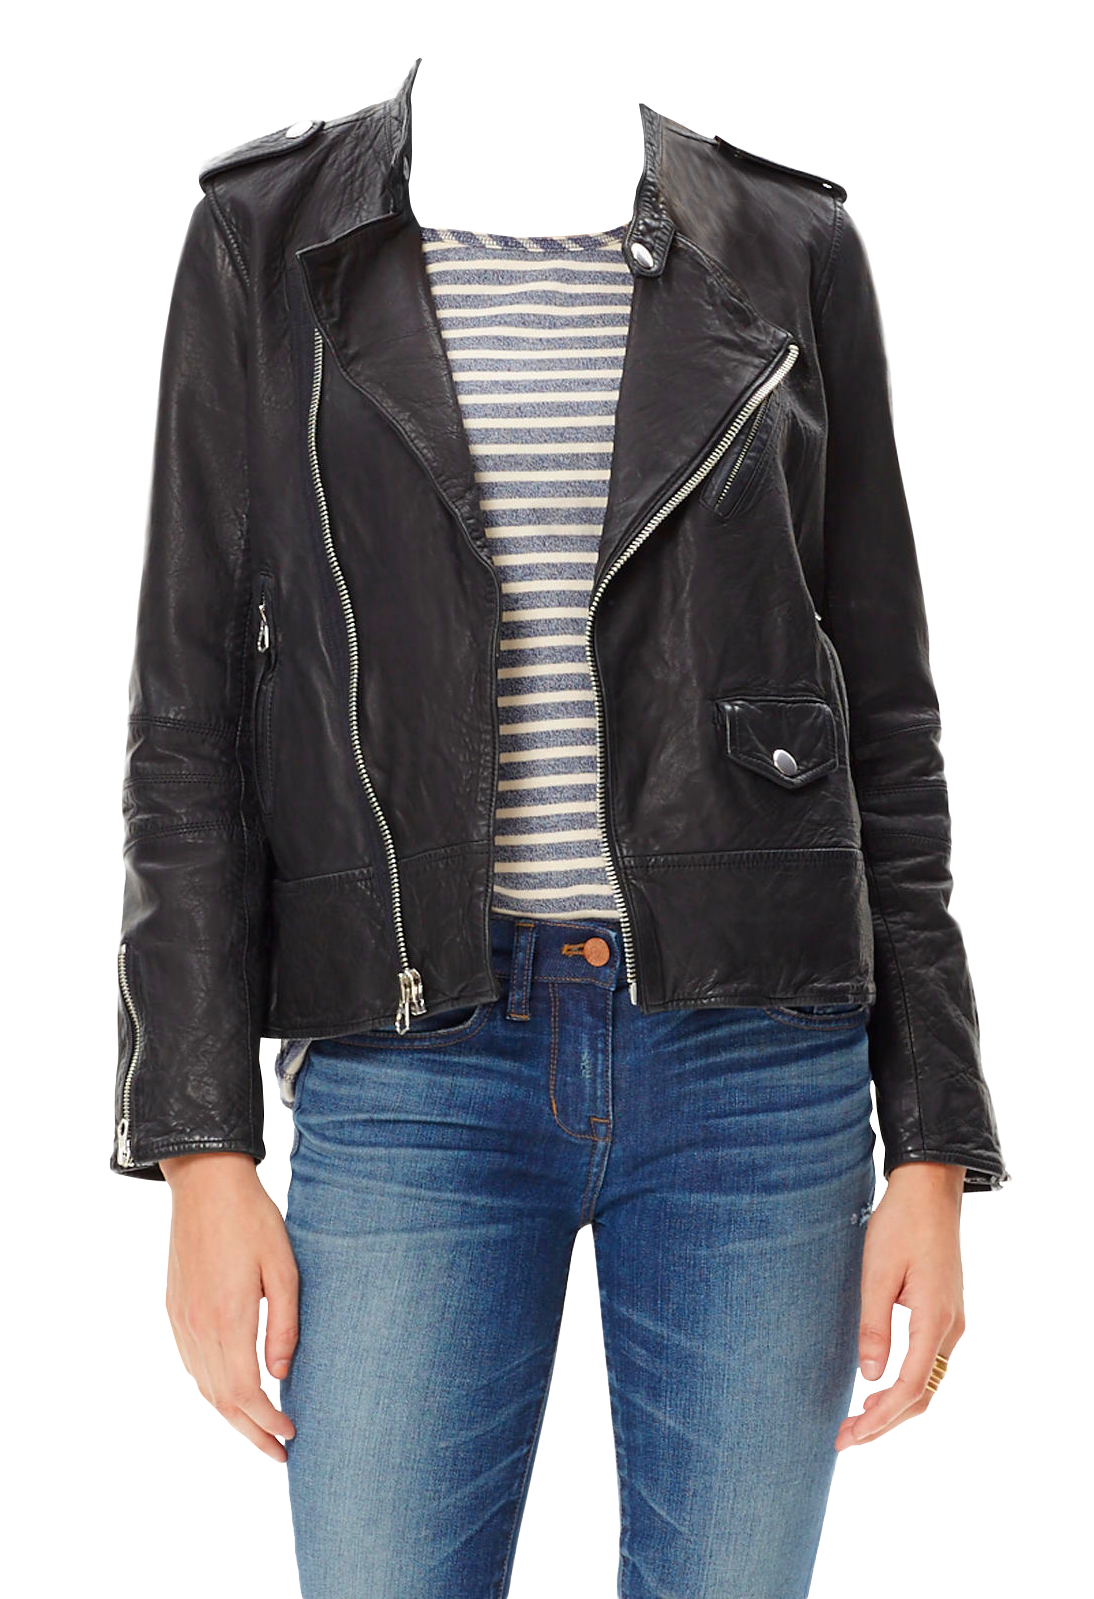 Jacket clipart lady jacket. Girl png image purepng